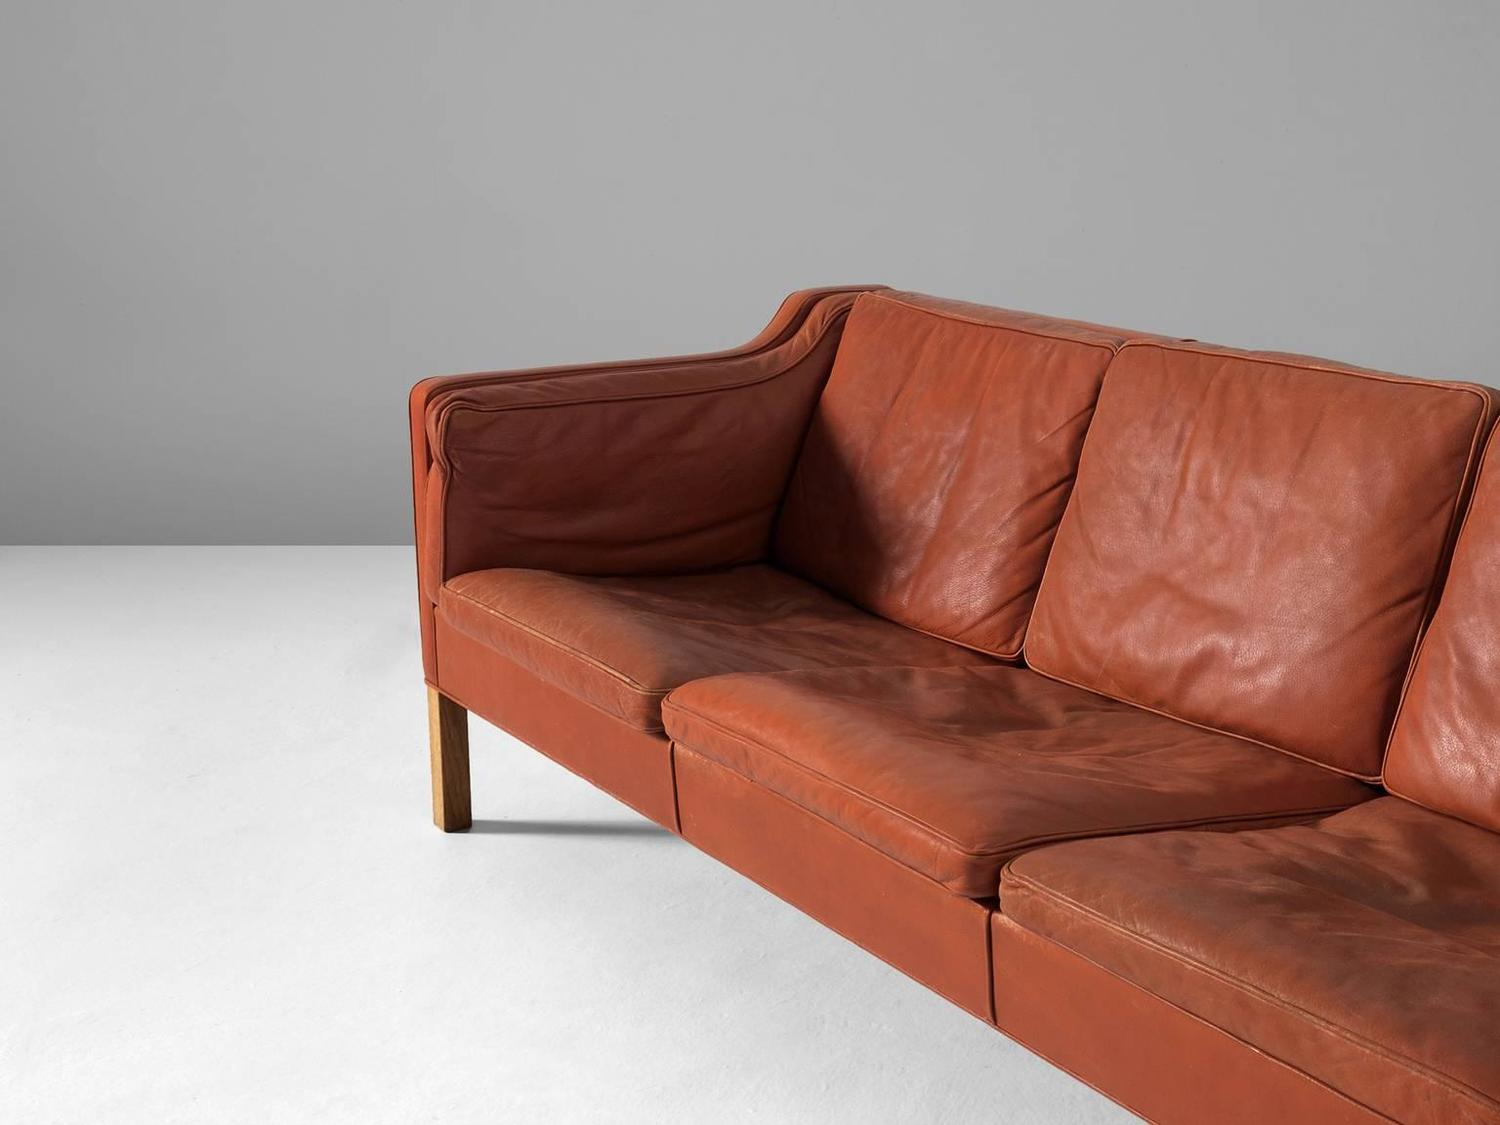 b rge mogensen 2213 sofa in cognac leather for sale at 1stdibs. Black Bedroom Furniture Sets. Home Design Ideas